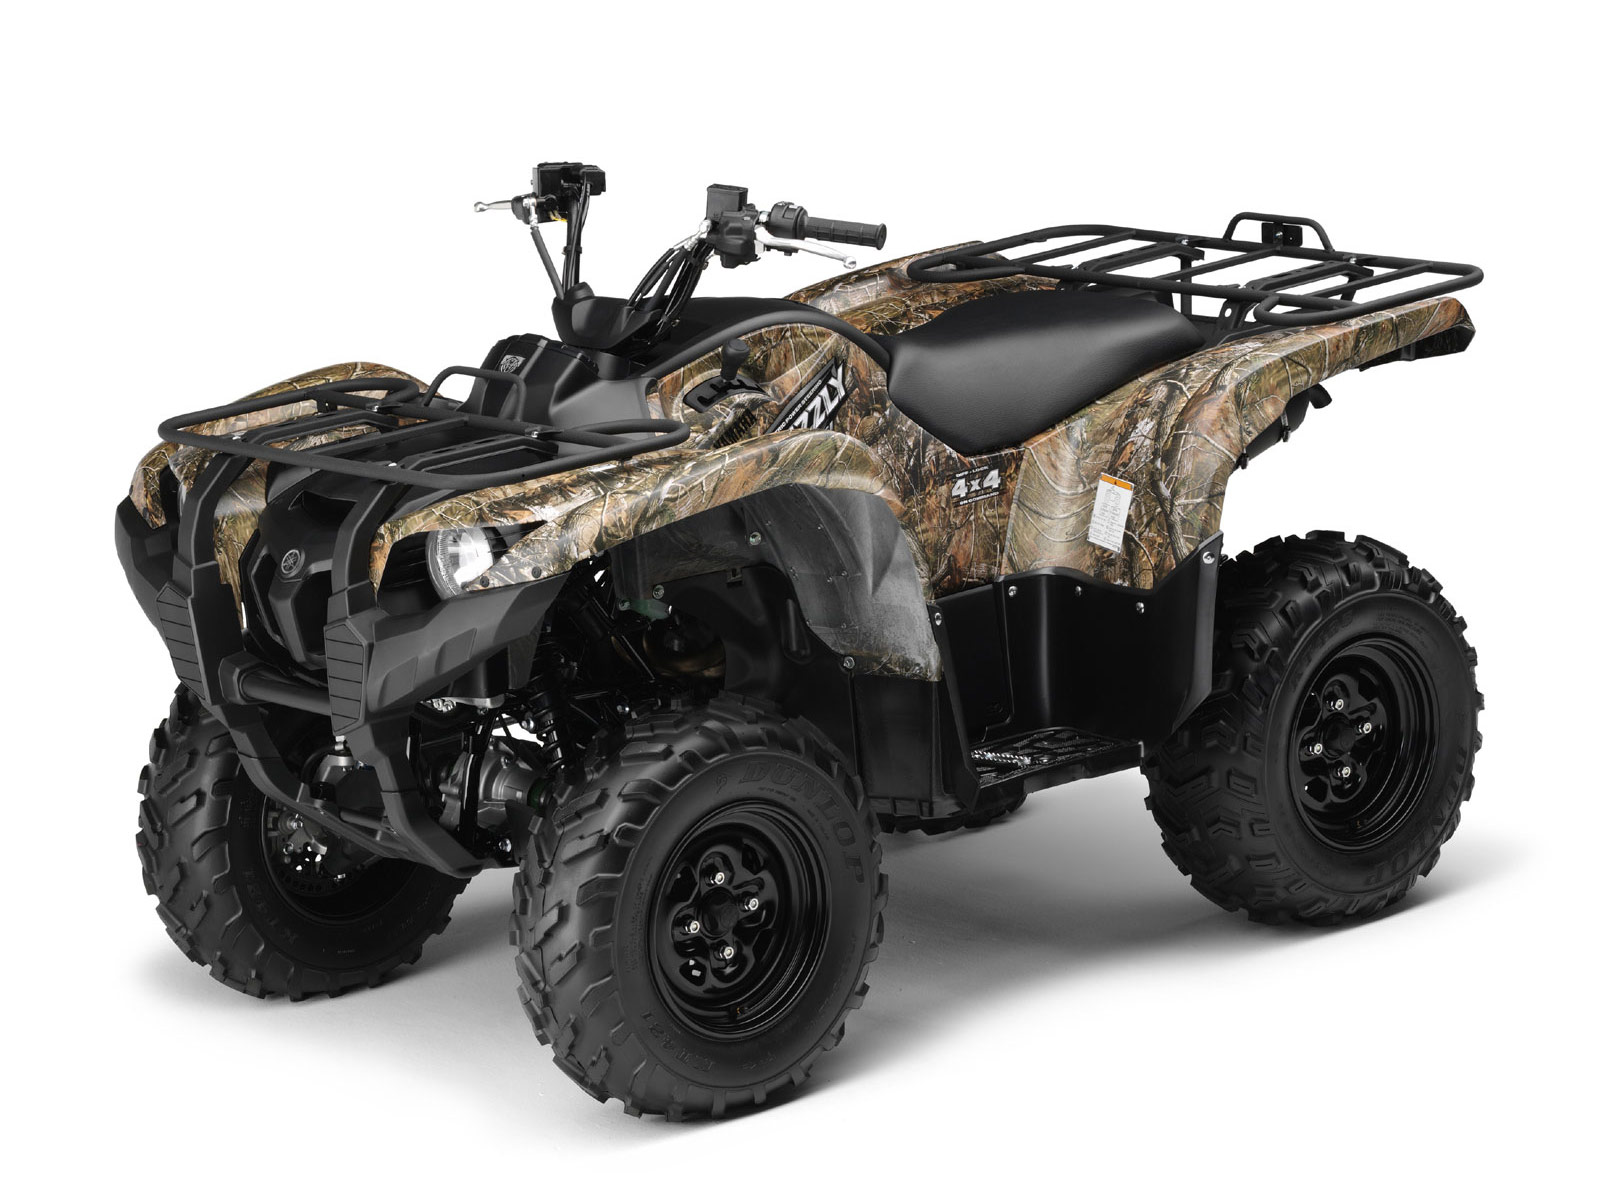 Yamaha Grizzly Camo